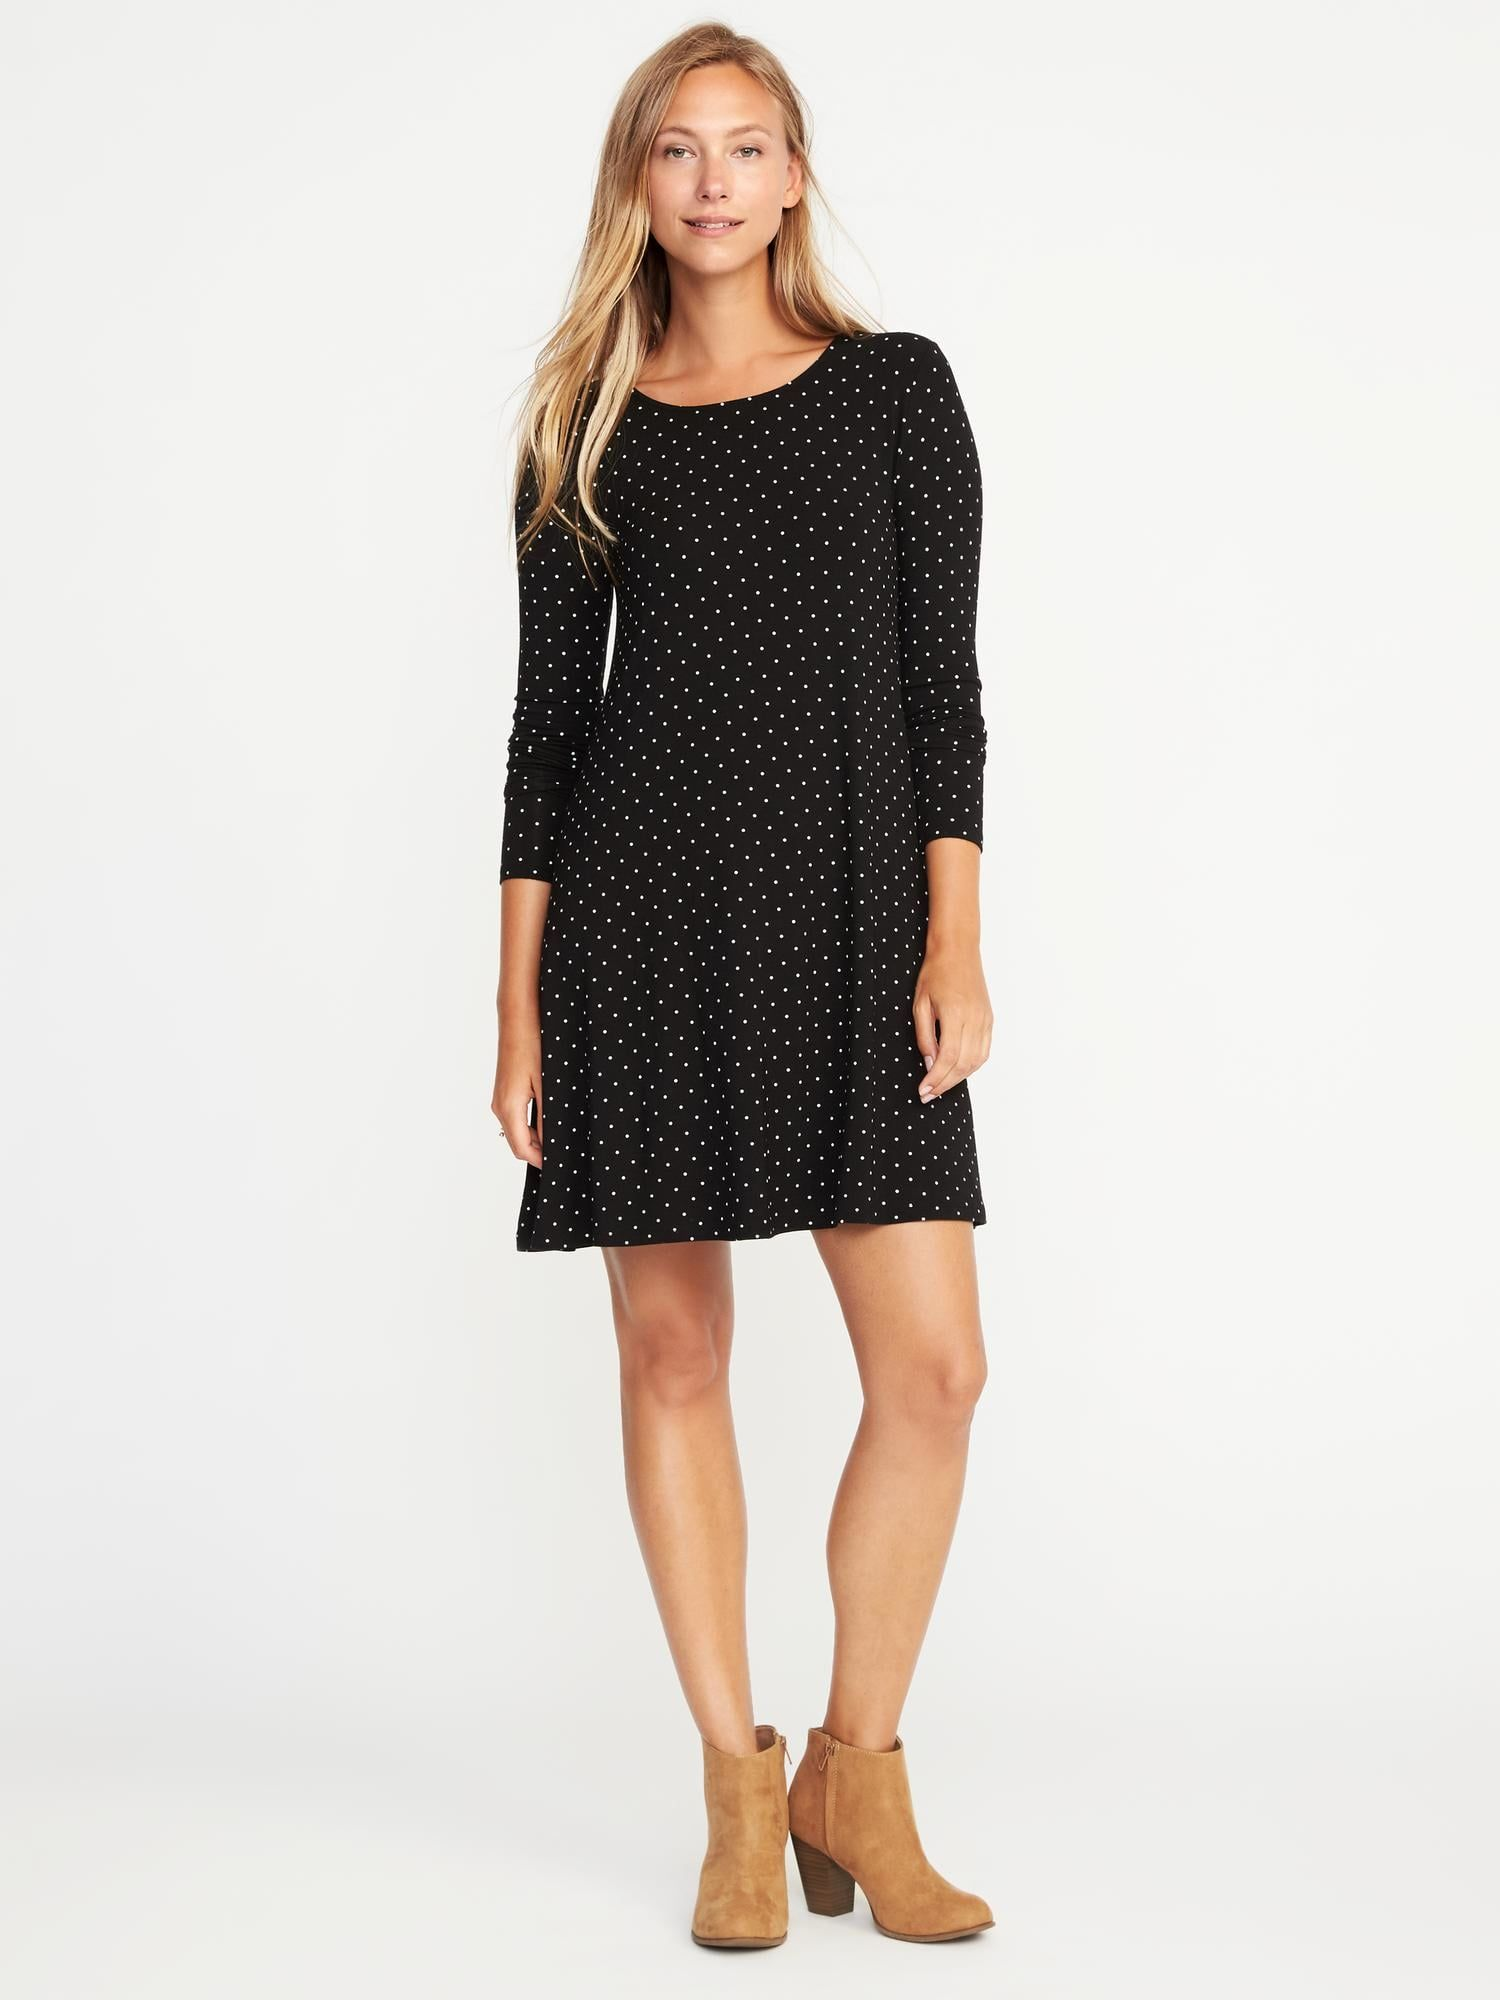 Old Navy Jersey Knit Swing Dress 30 Shade Black Dots